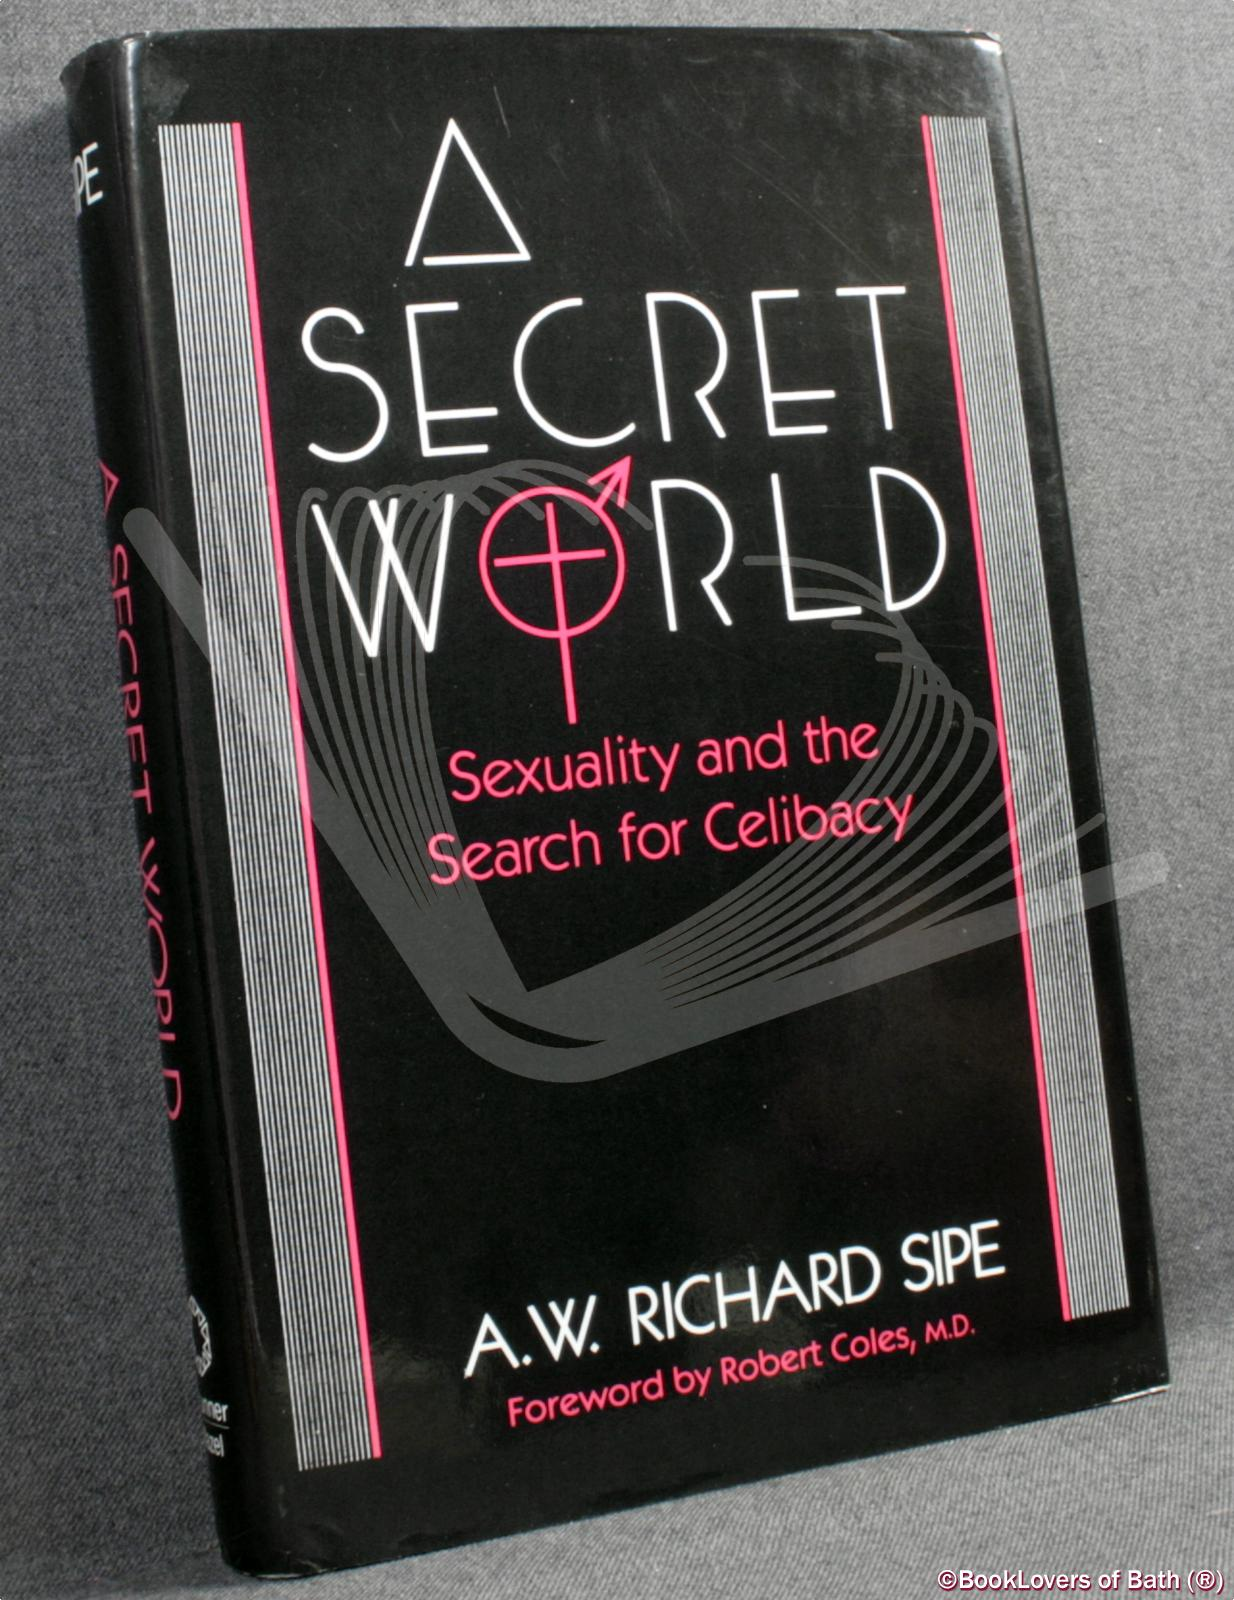 A Secret World: Sexuality and the Search for Celibacy - A.W. Richard Sipe